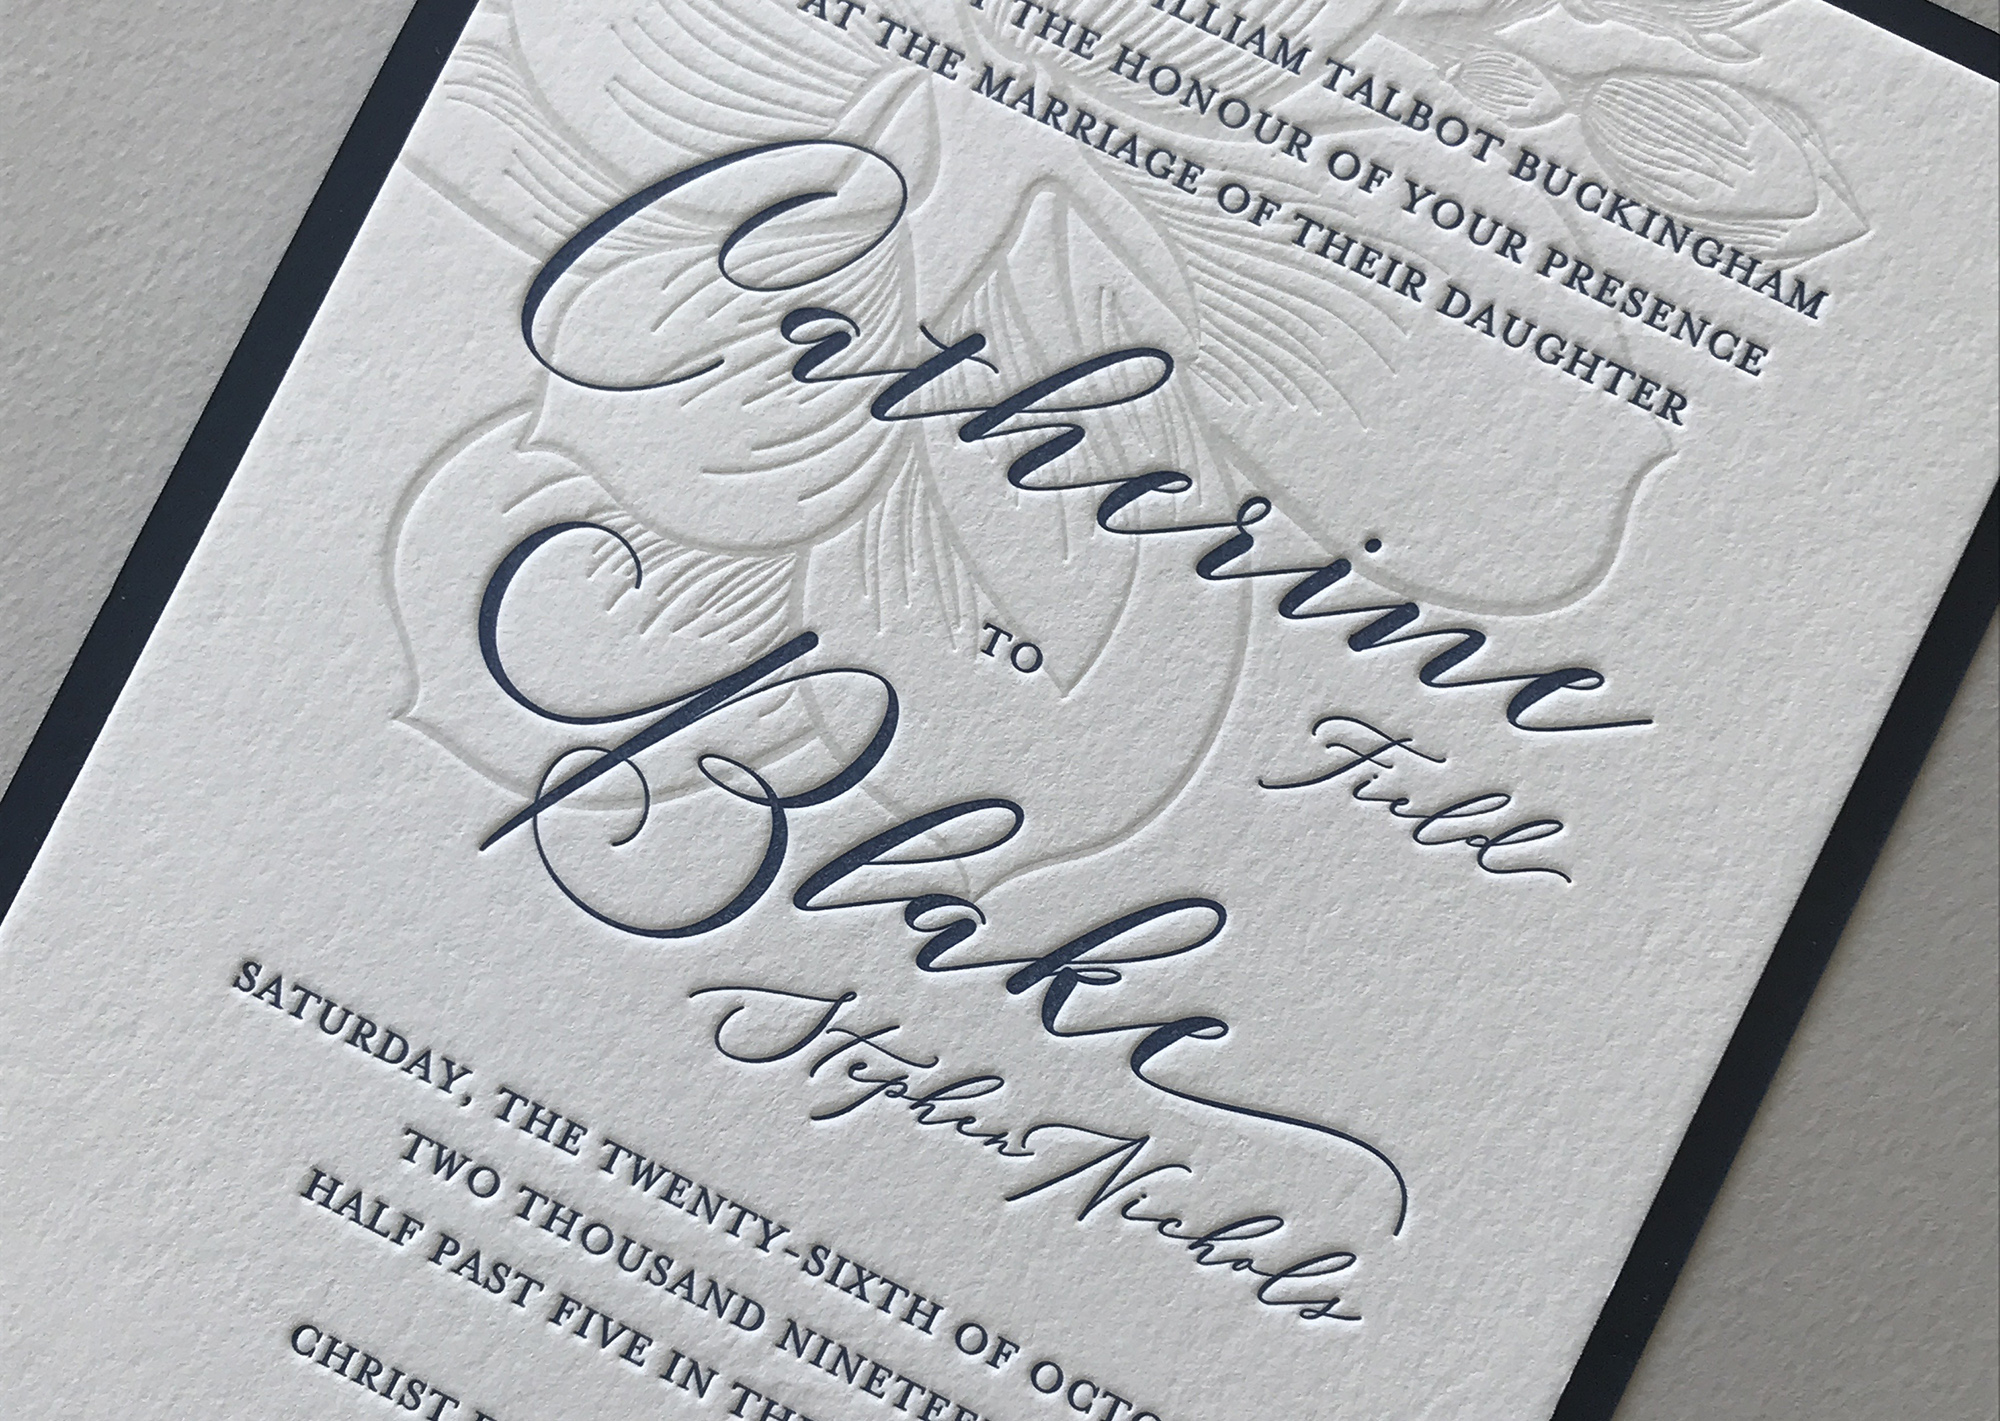 Two color custom invitation printed on 220# Crane's Lettra pearl, mounted on Gmund Imperial Blue